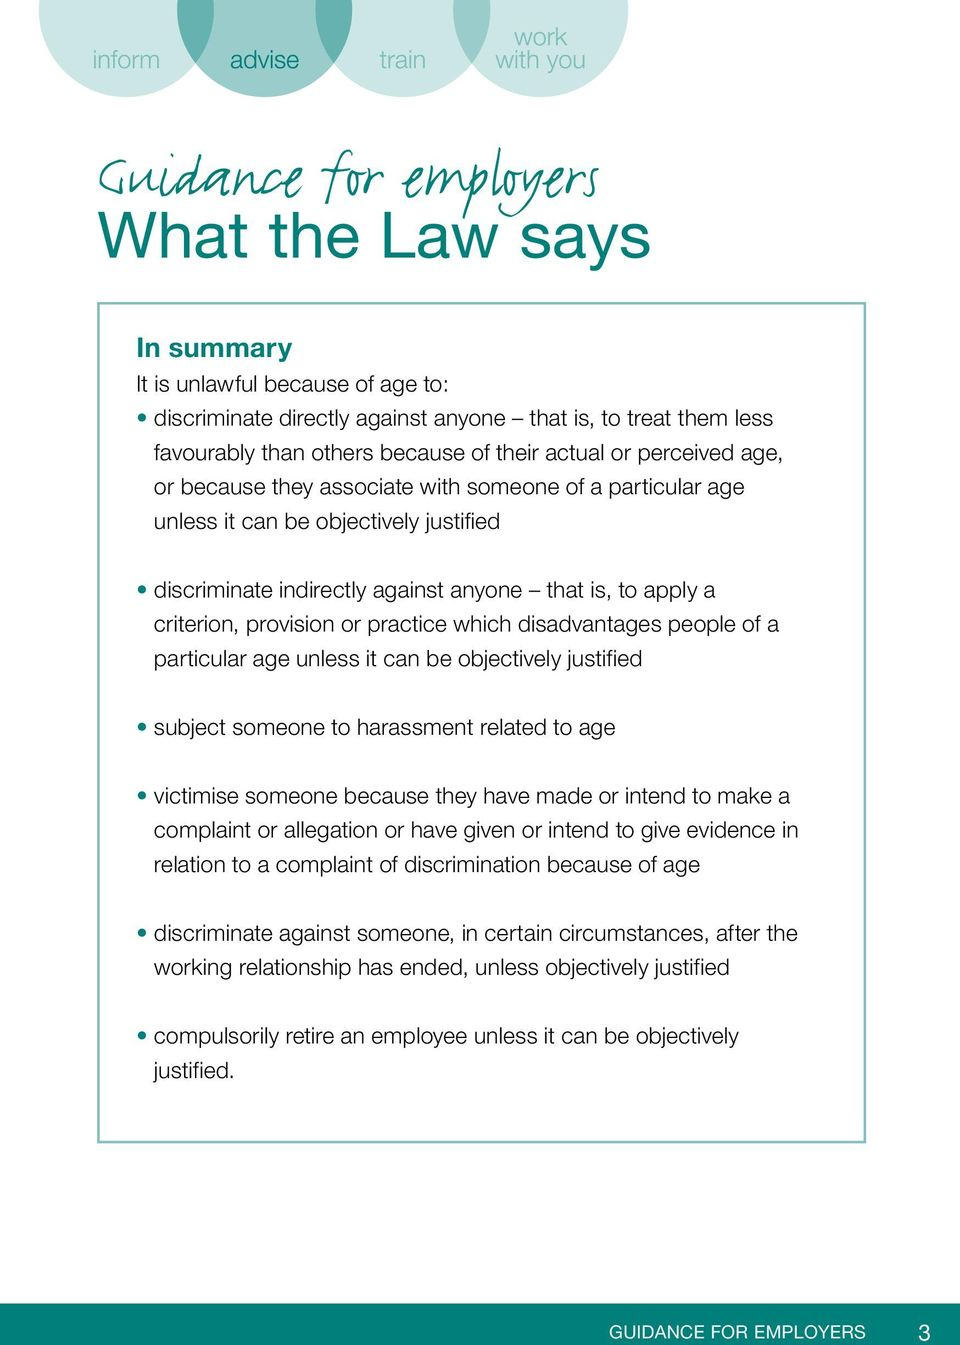 practice which disadvantages people of a particular age unless it can be objectively justified subject someone to harassment related to age victimise someone because they have made or intend to make